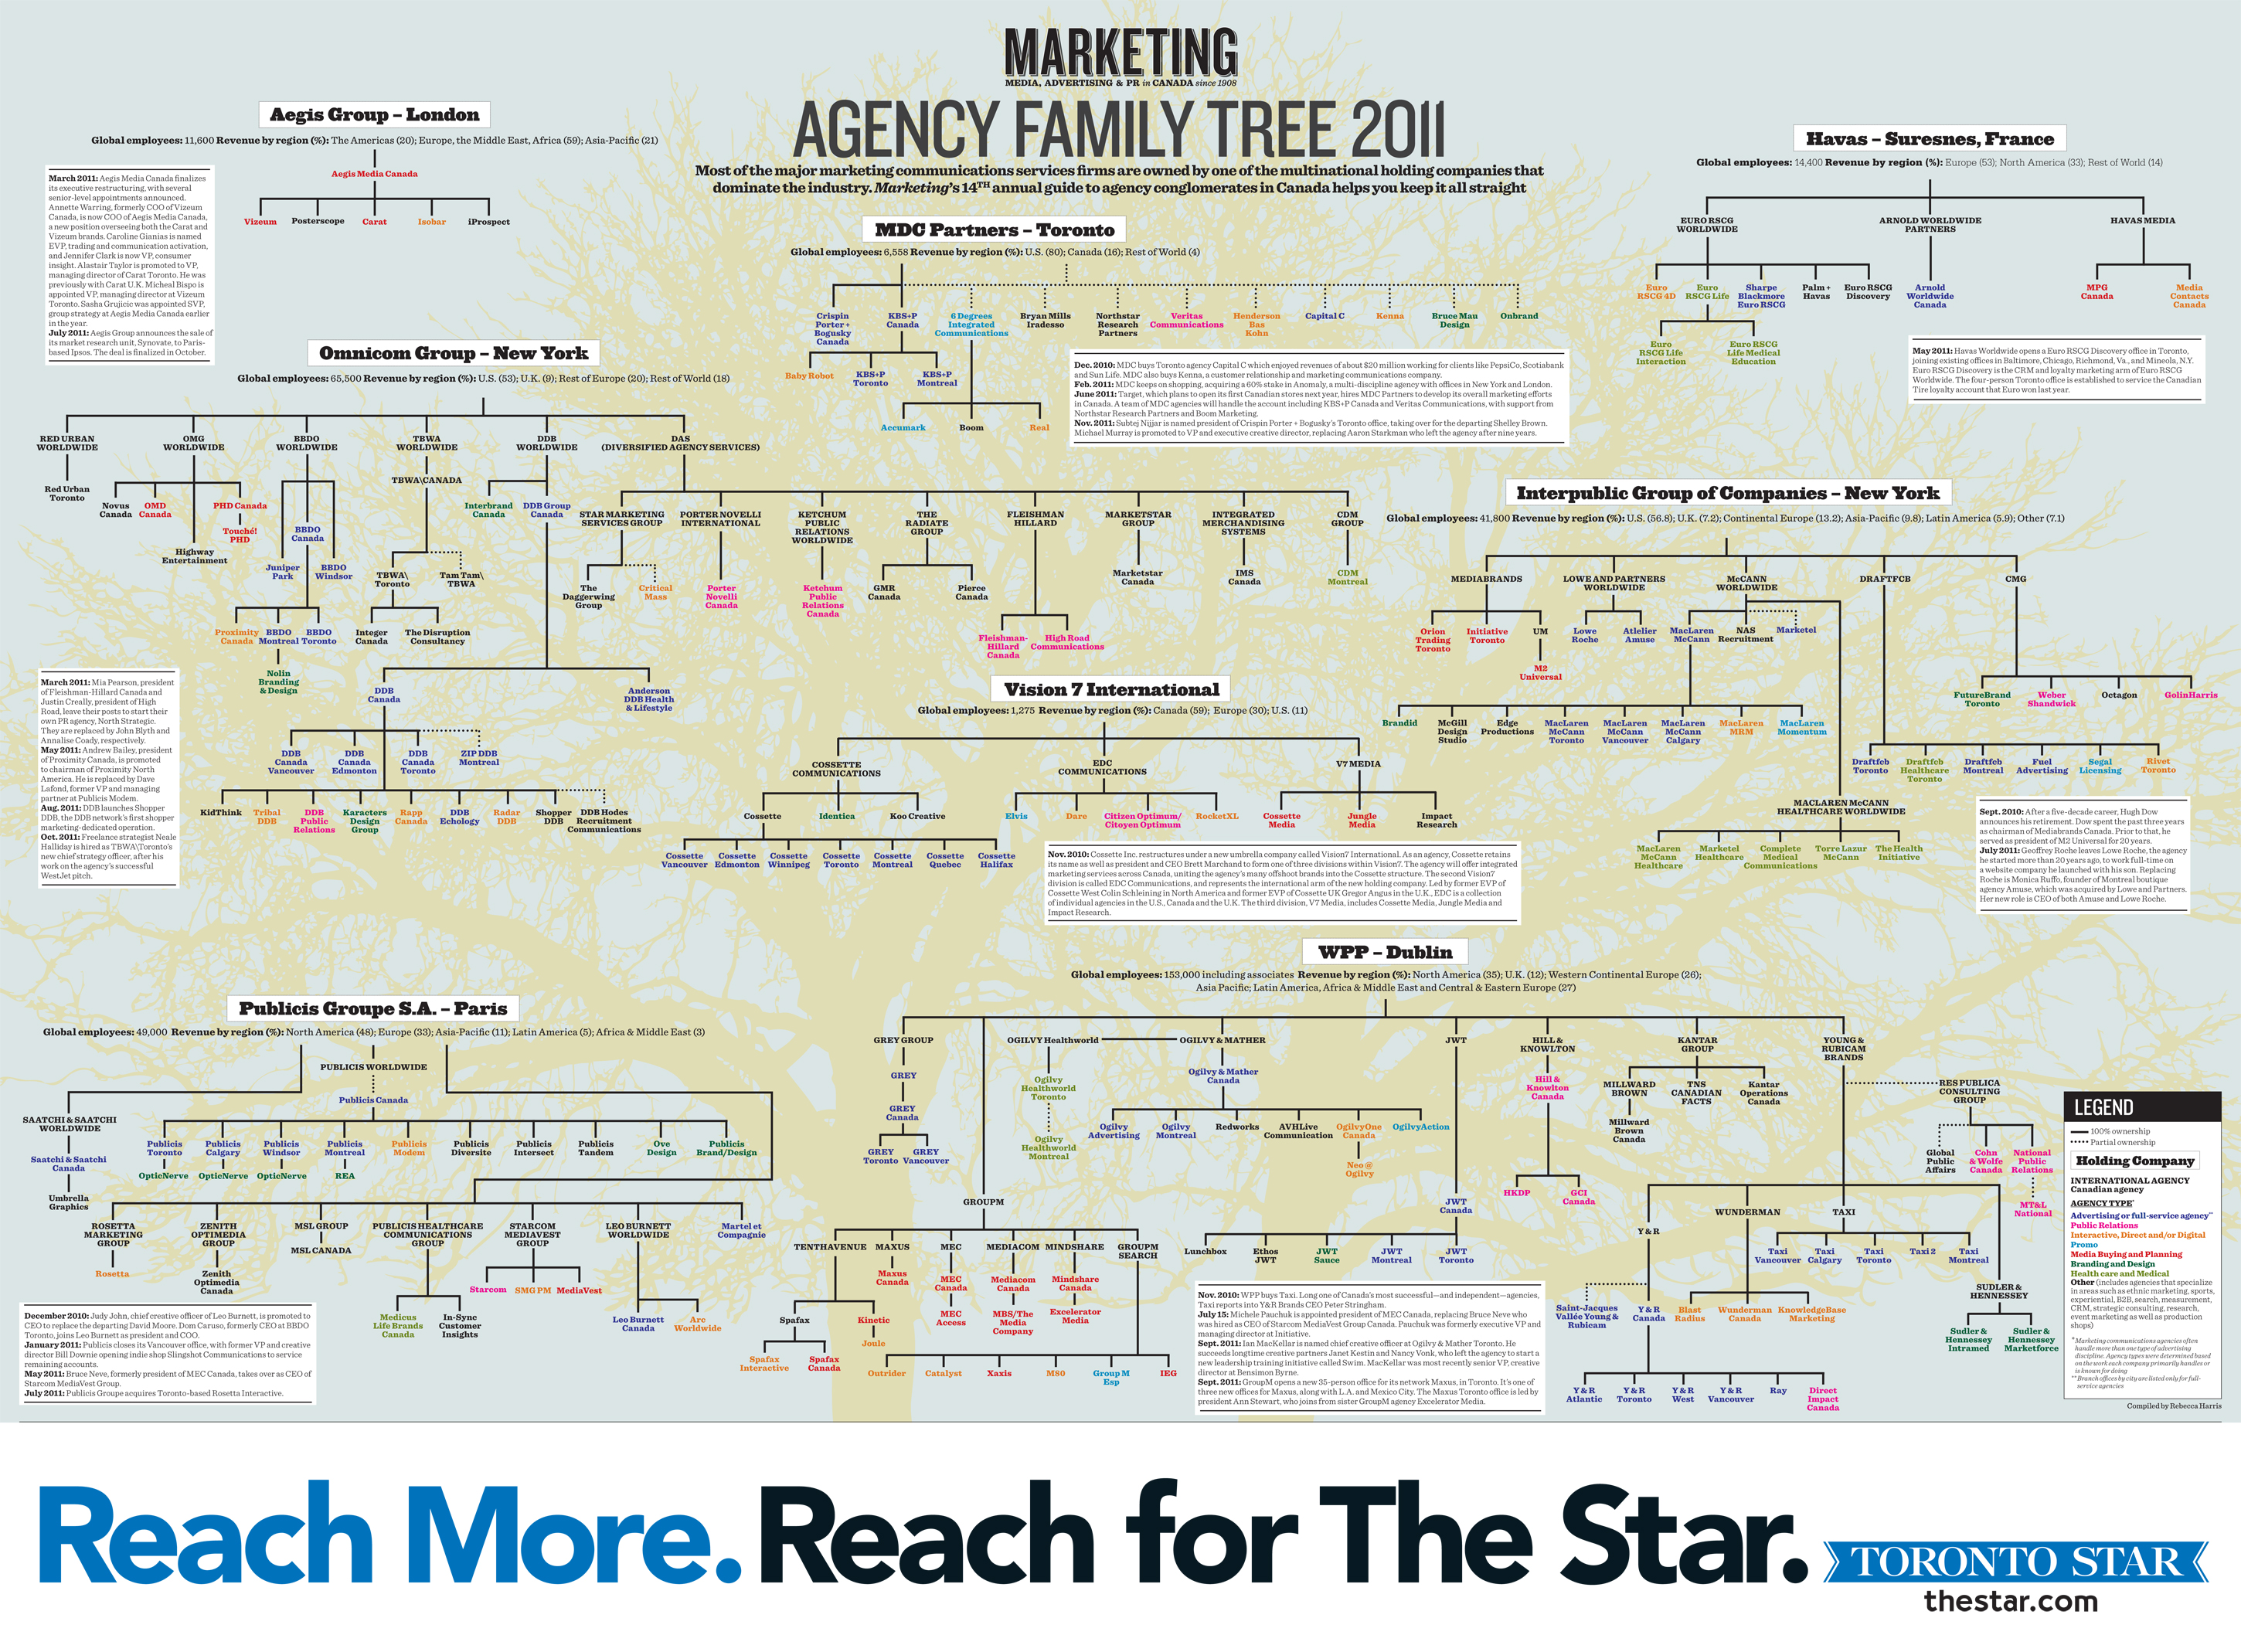 check grandiose advertising agency offices ad agency family tree advertising agency office advertising agency